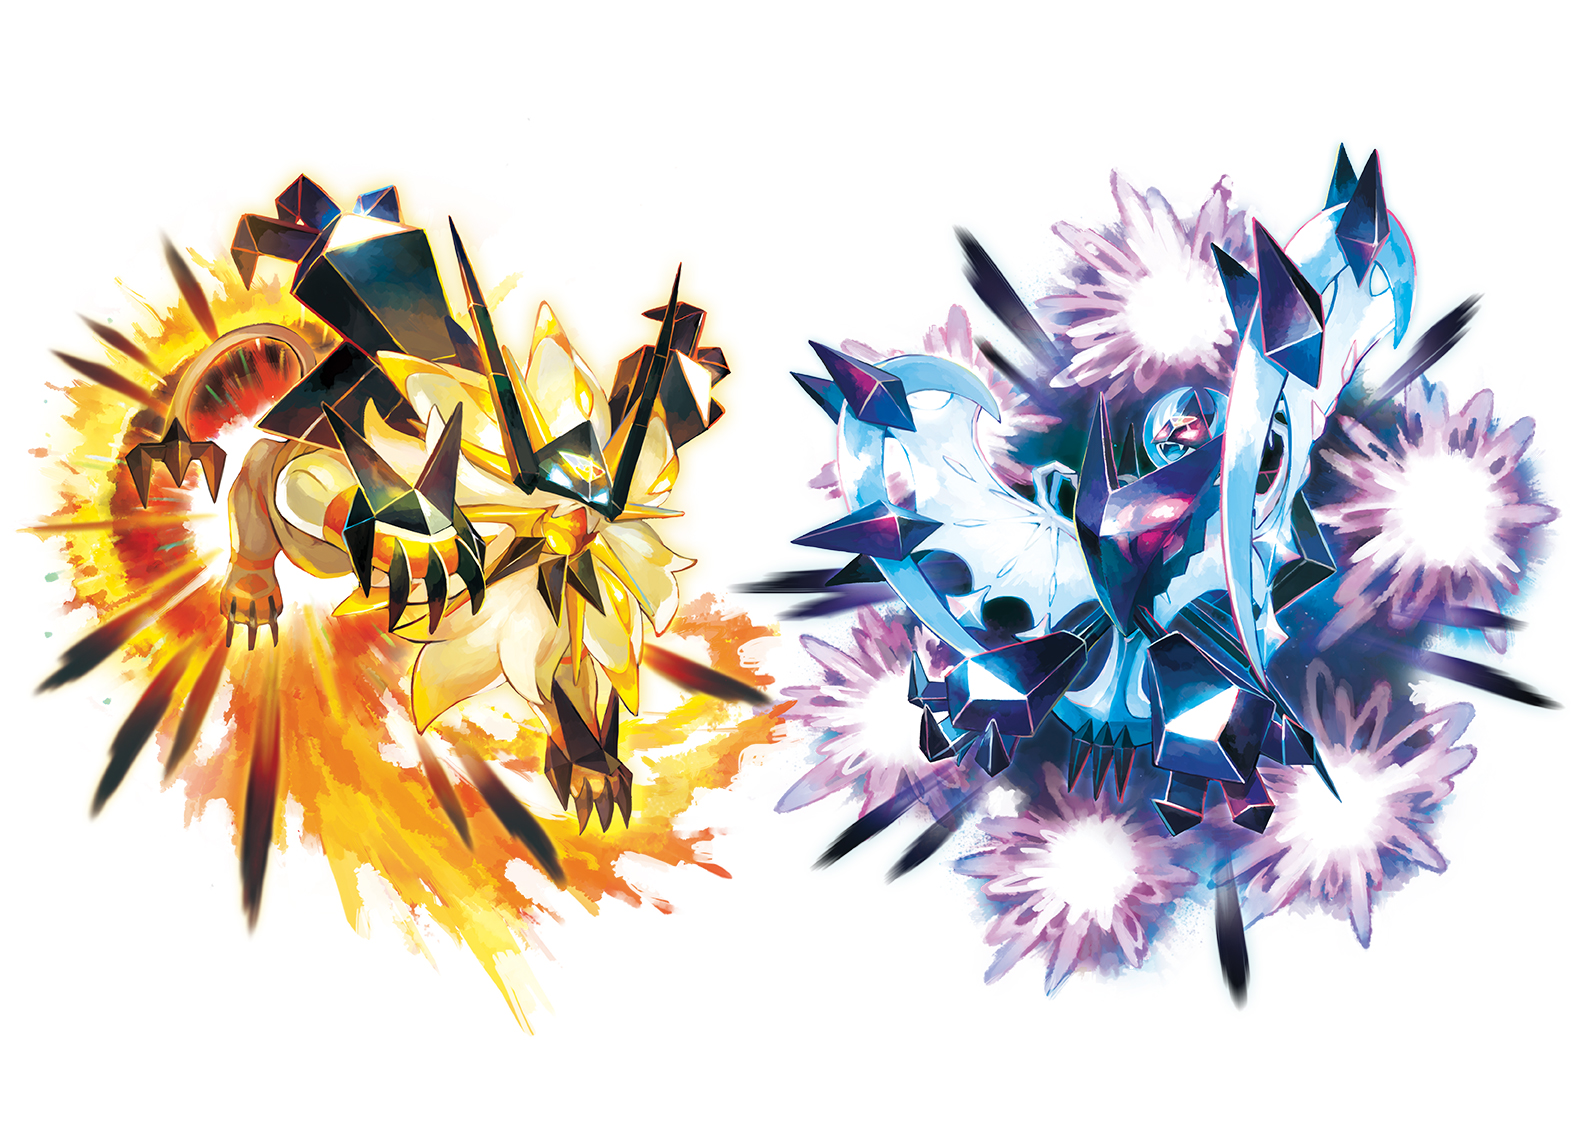 pokemon ultra sun ultra moon details necrozma z moves new rotom dex features nintendo. Black Bedroom Furniture Sets. Home Design Ideas